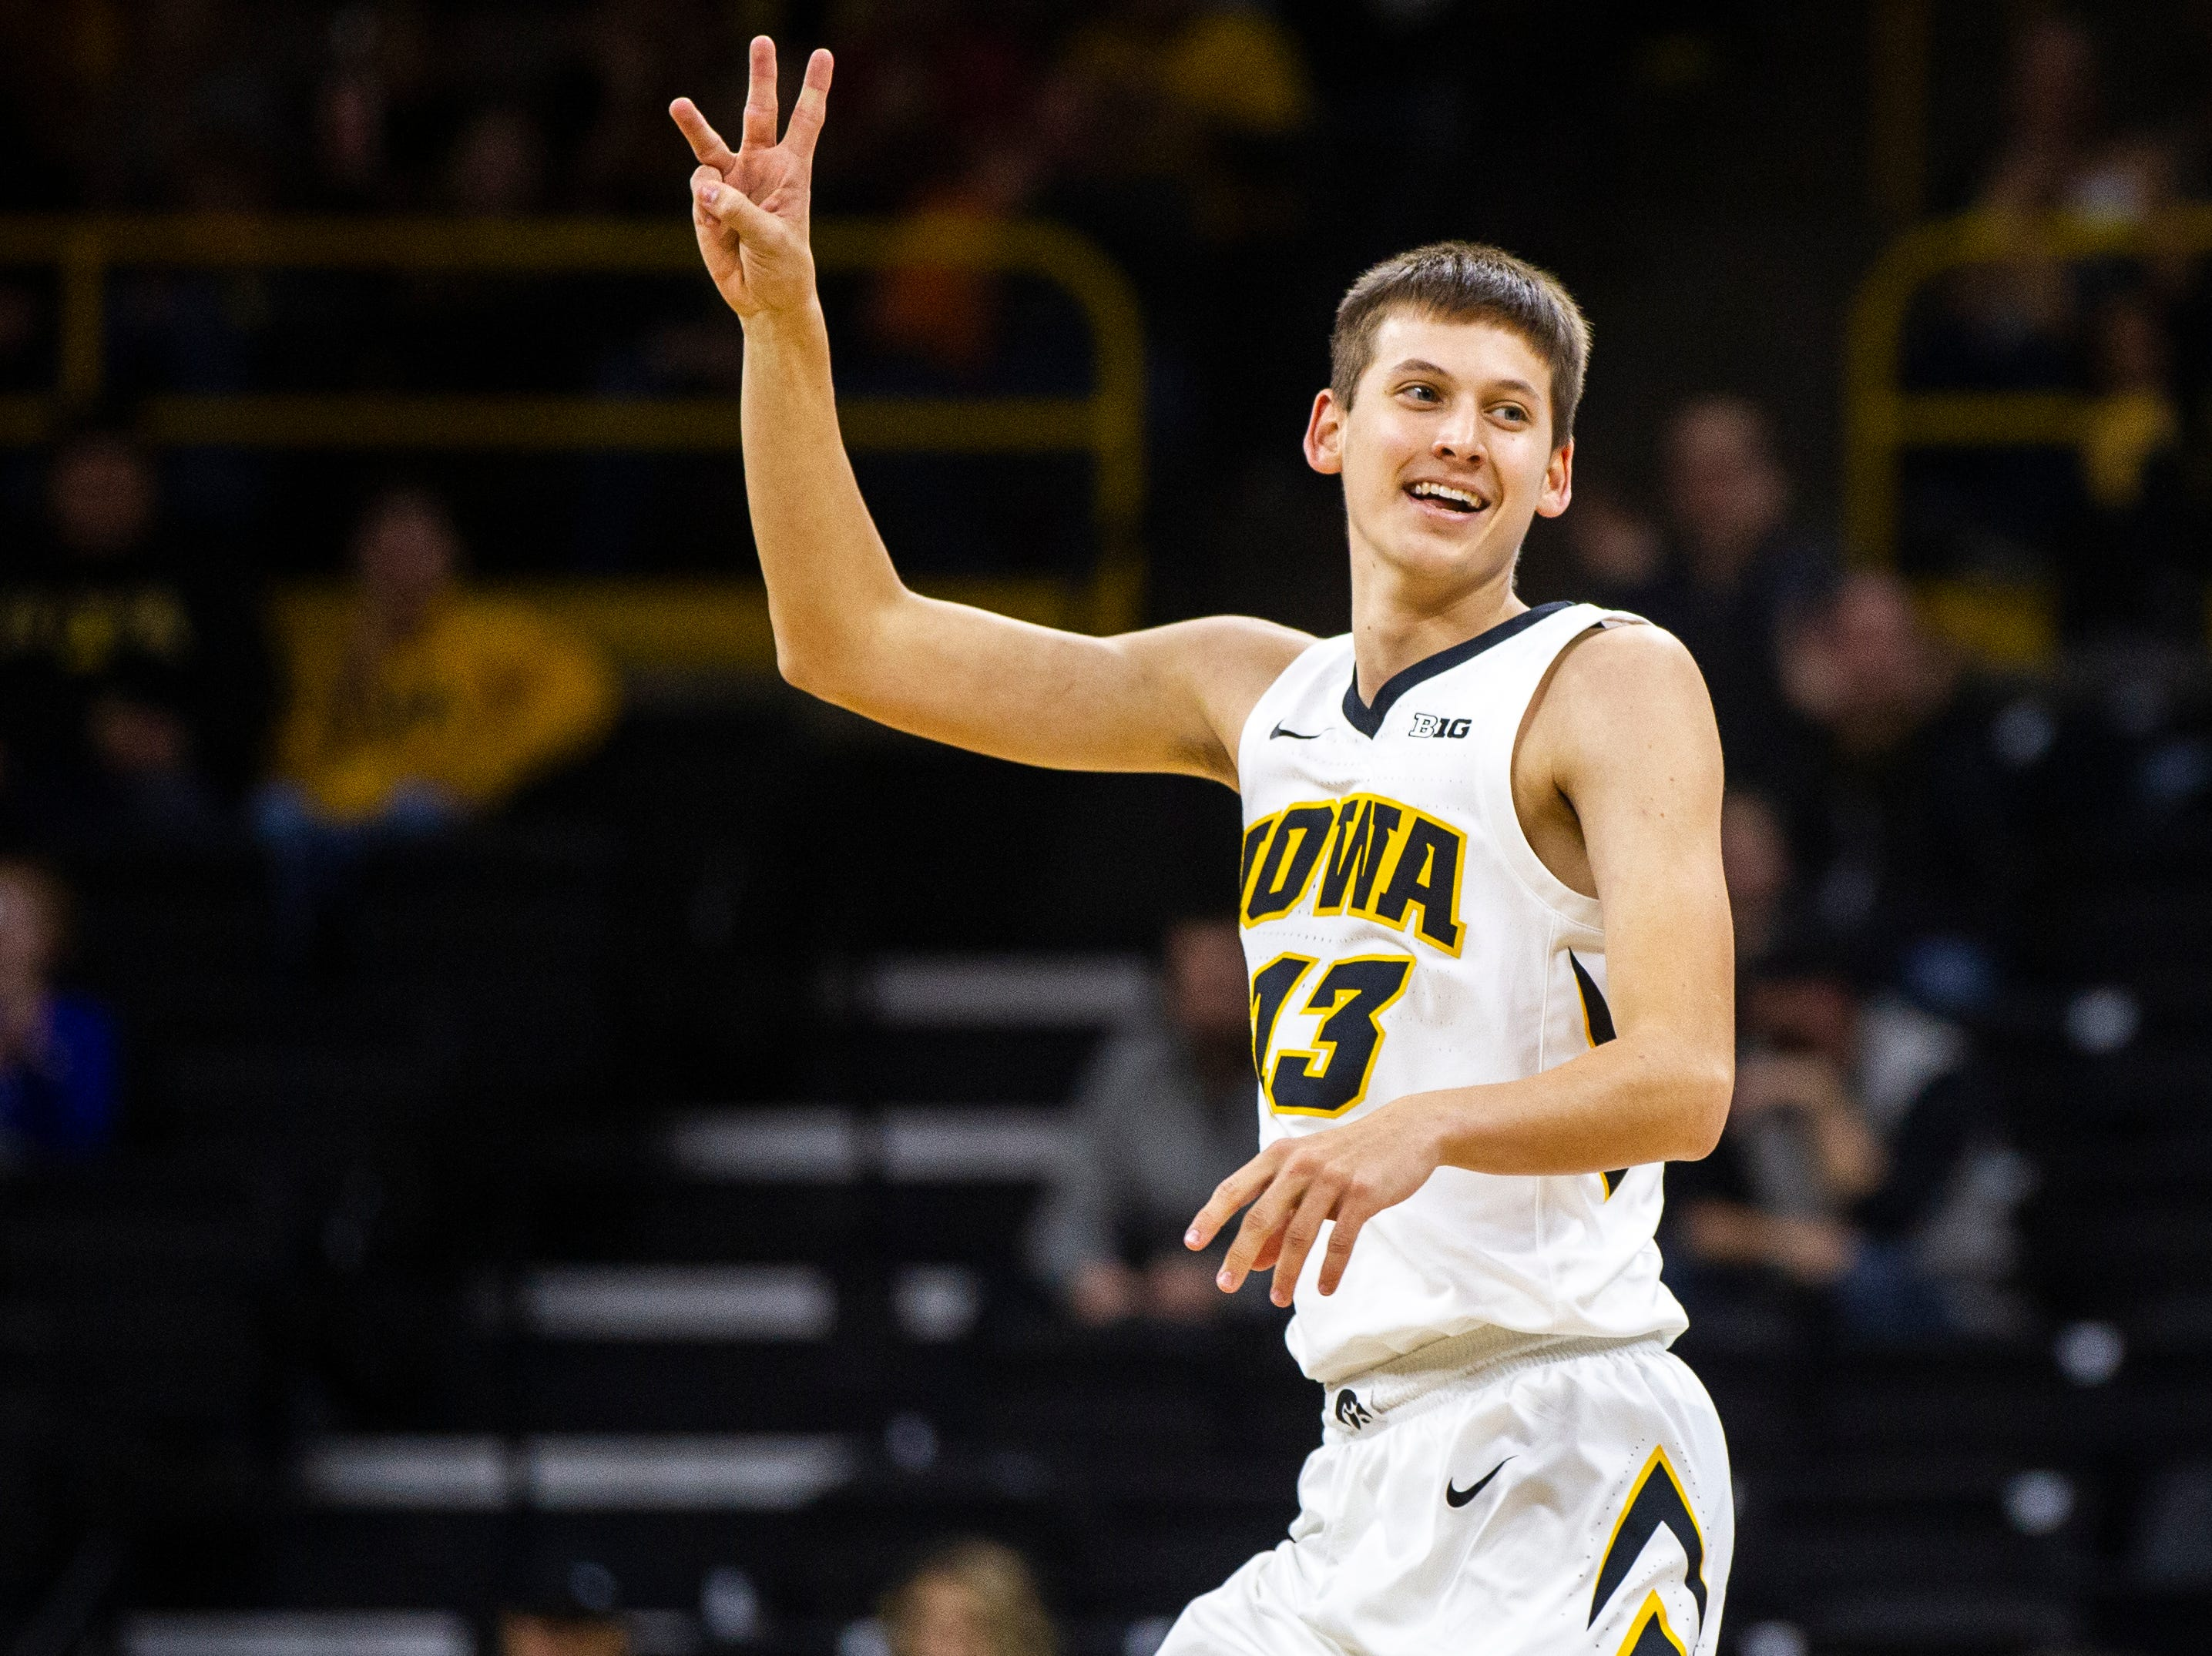 Iowa guard Austin Ash (13) holds up three fingers after making a 3-point basket during an NCAA men's basketball game on Wednesday, Nov. 21, 2018, at Carver-Hawkeye Arena in Iowa City.